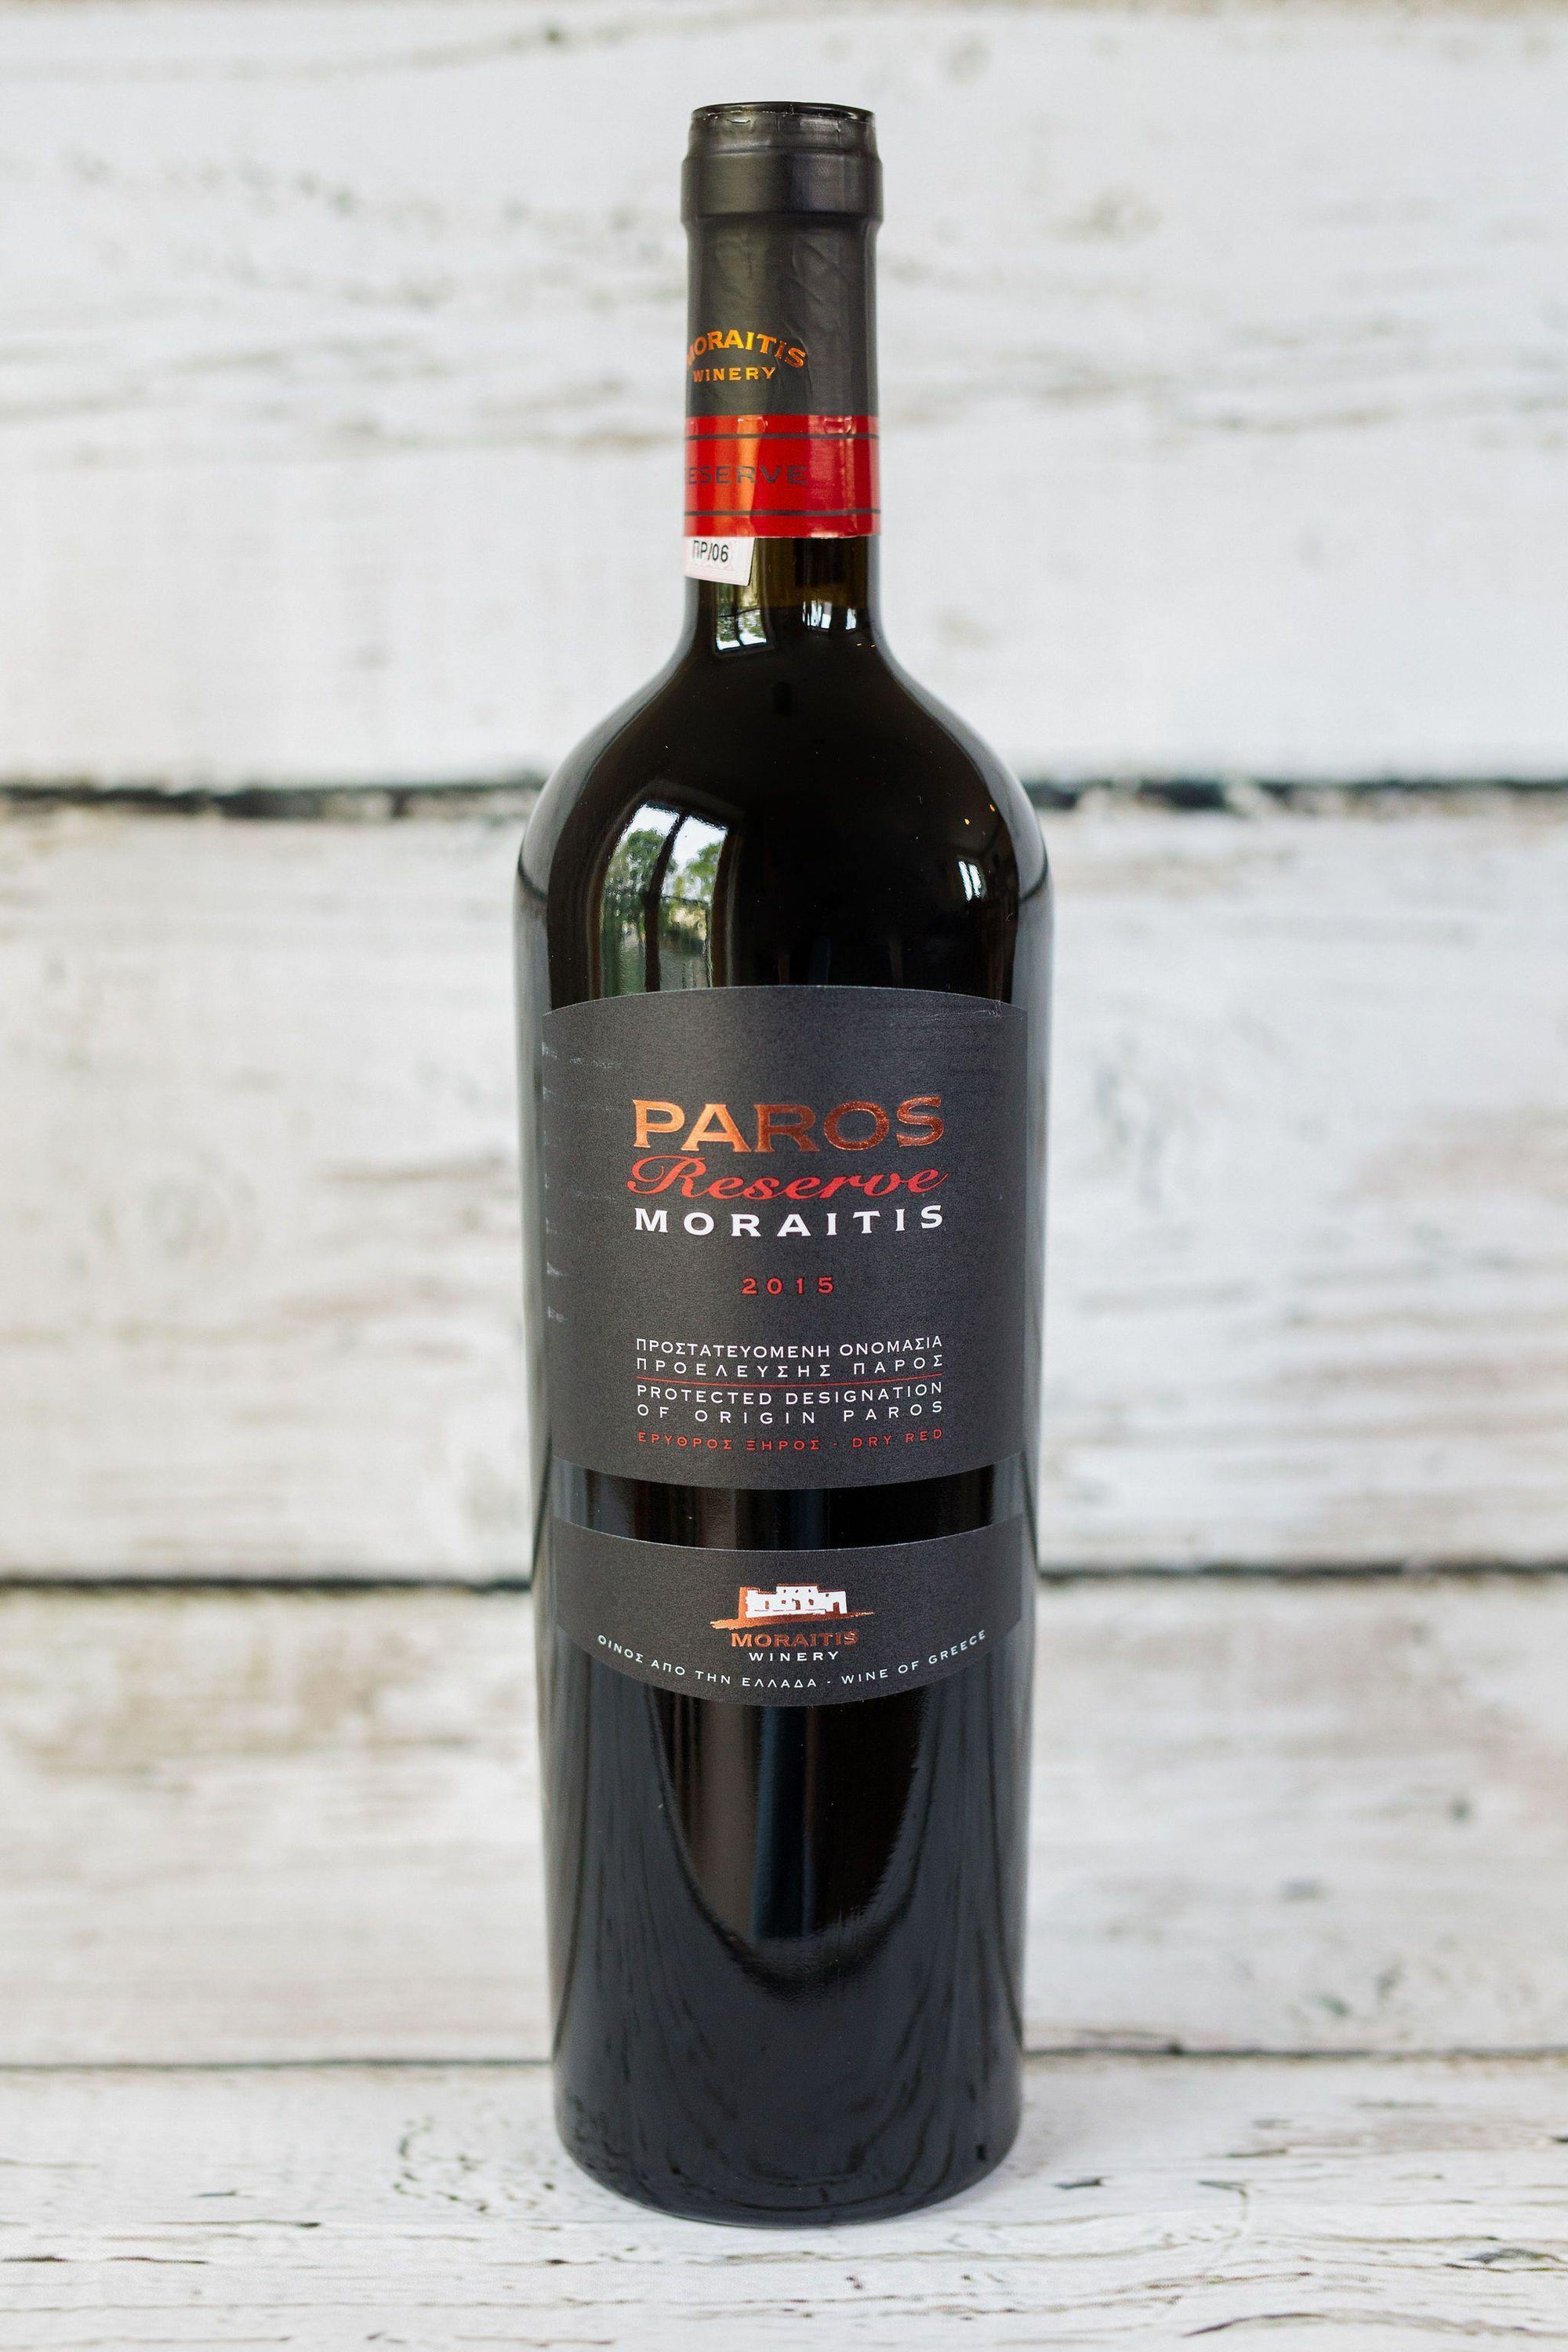 750ml brown glass bottle of Moraitis Paros Reserve red wine with front label and black foil cap